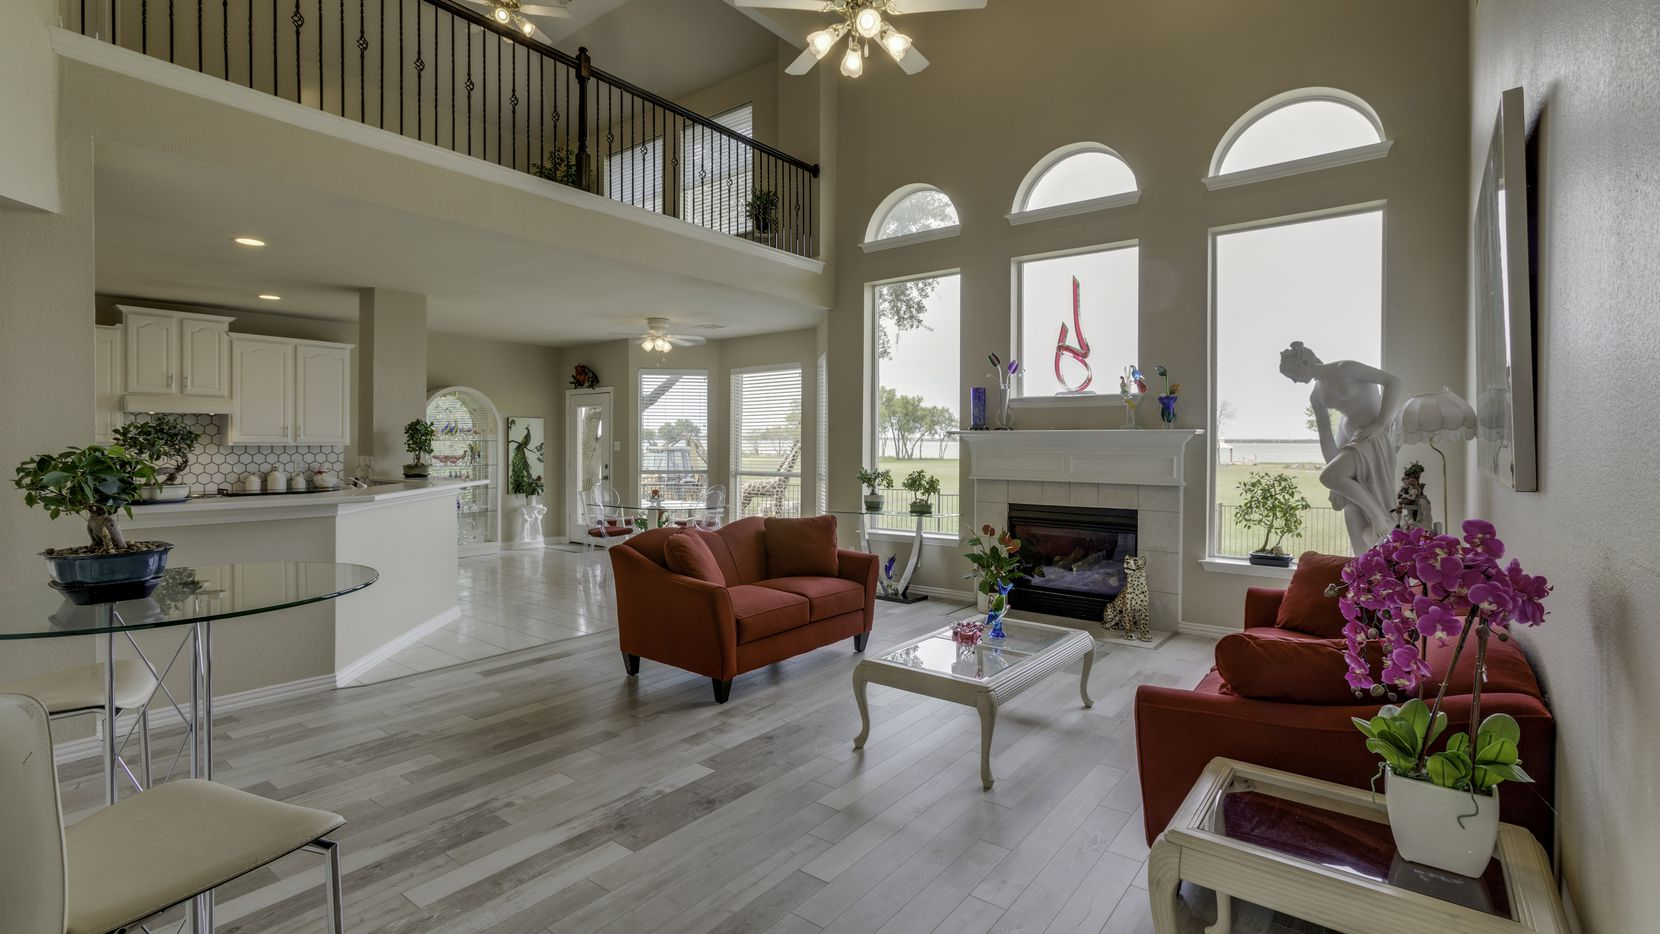 The home at 749 Turtle Cove Blvd. in Rockwall features views of Lake Ray Hubbard.